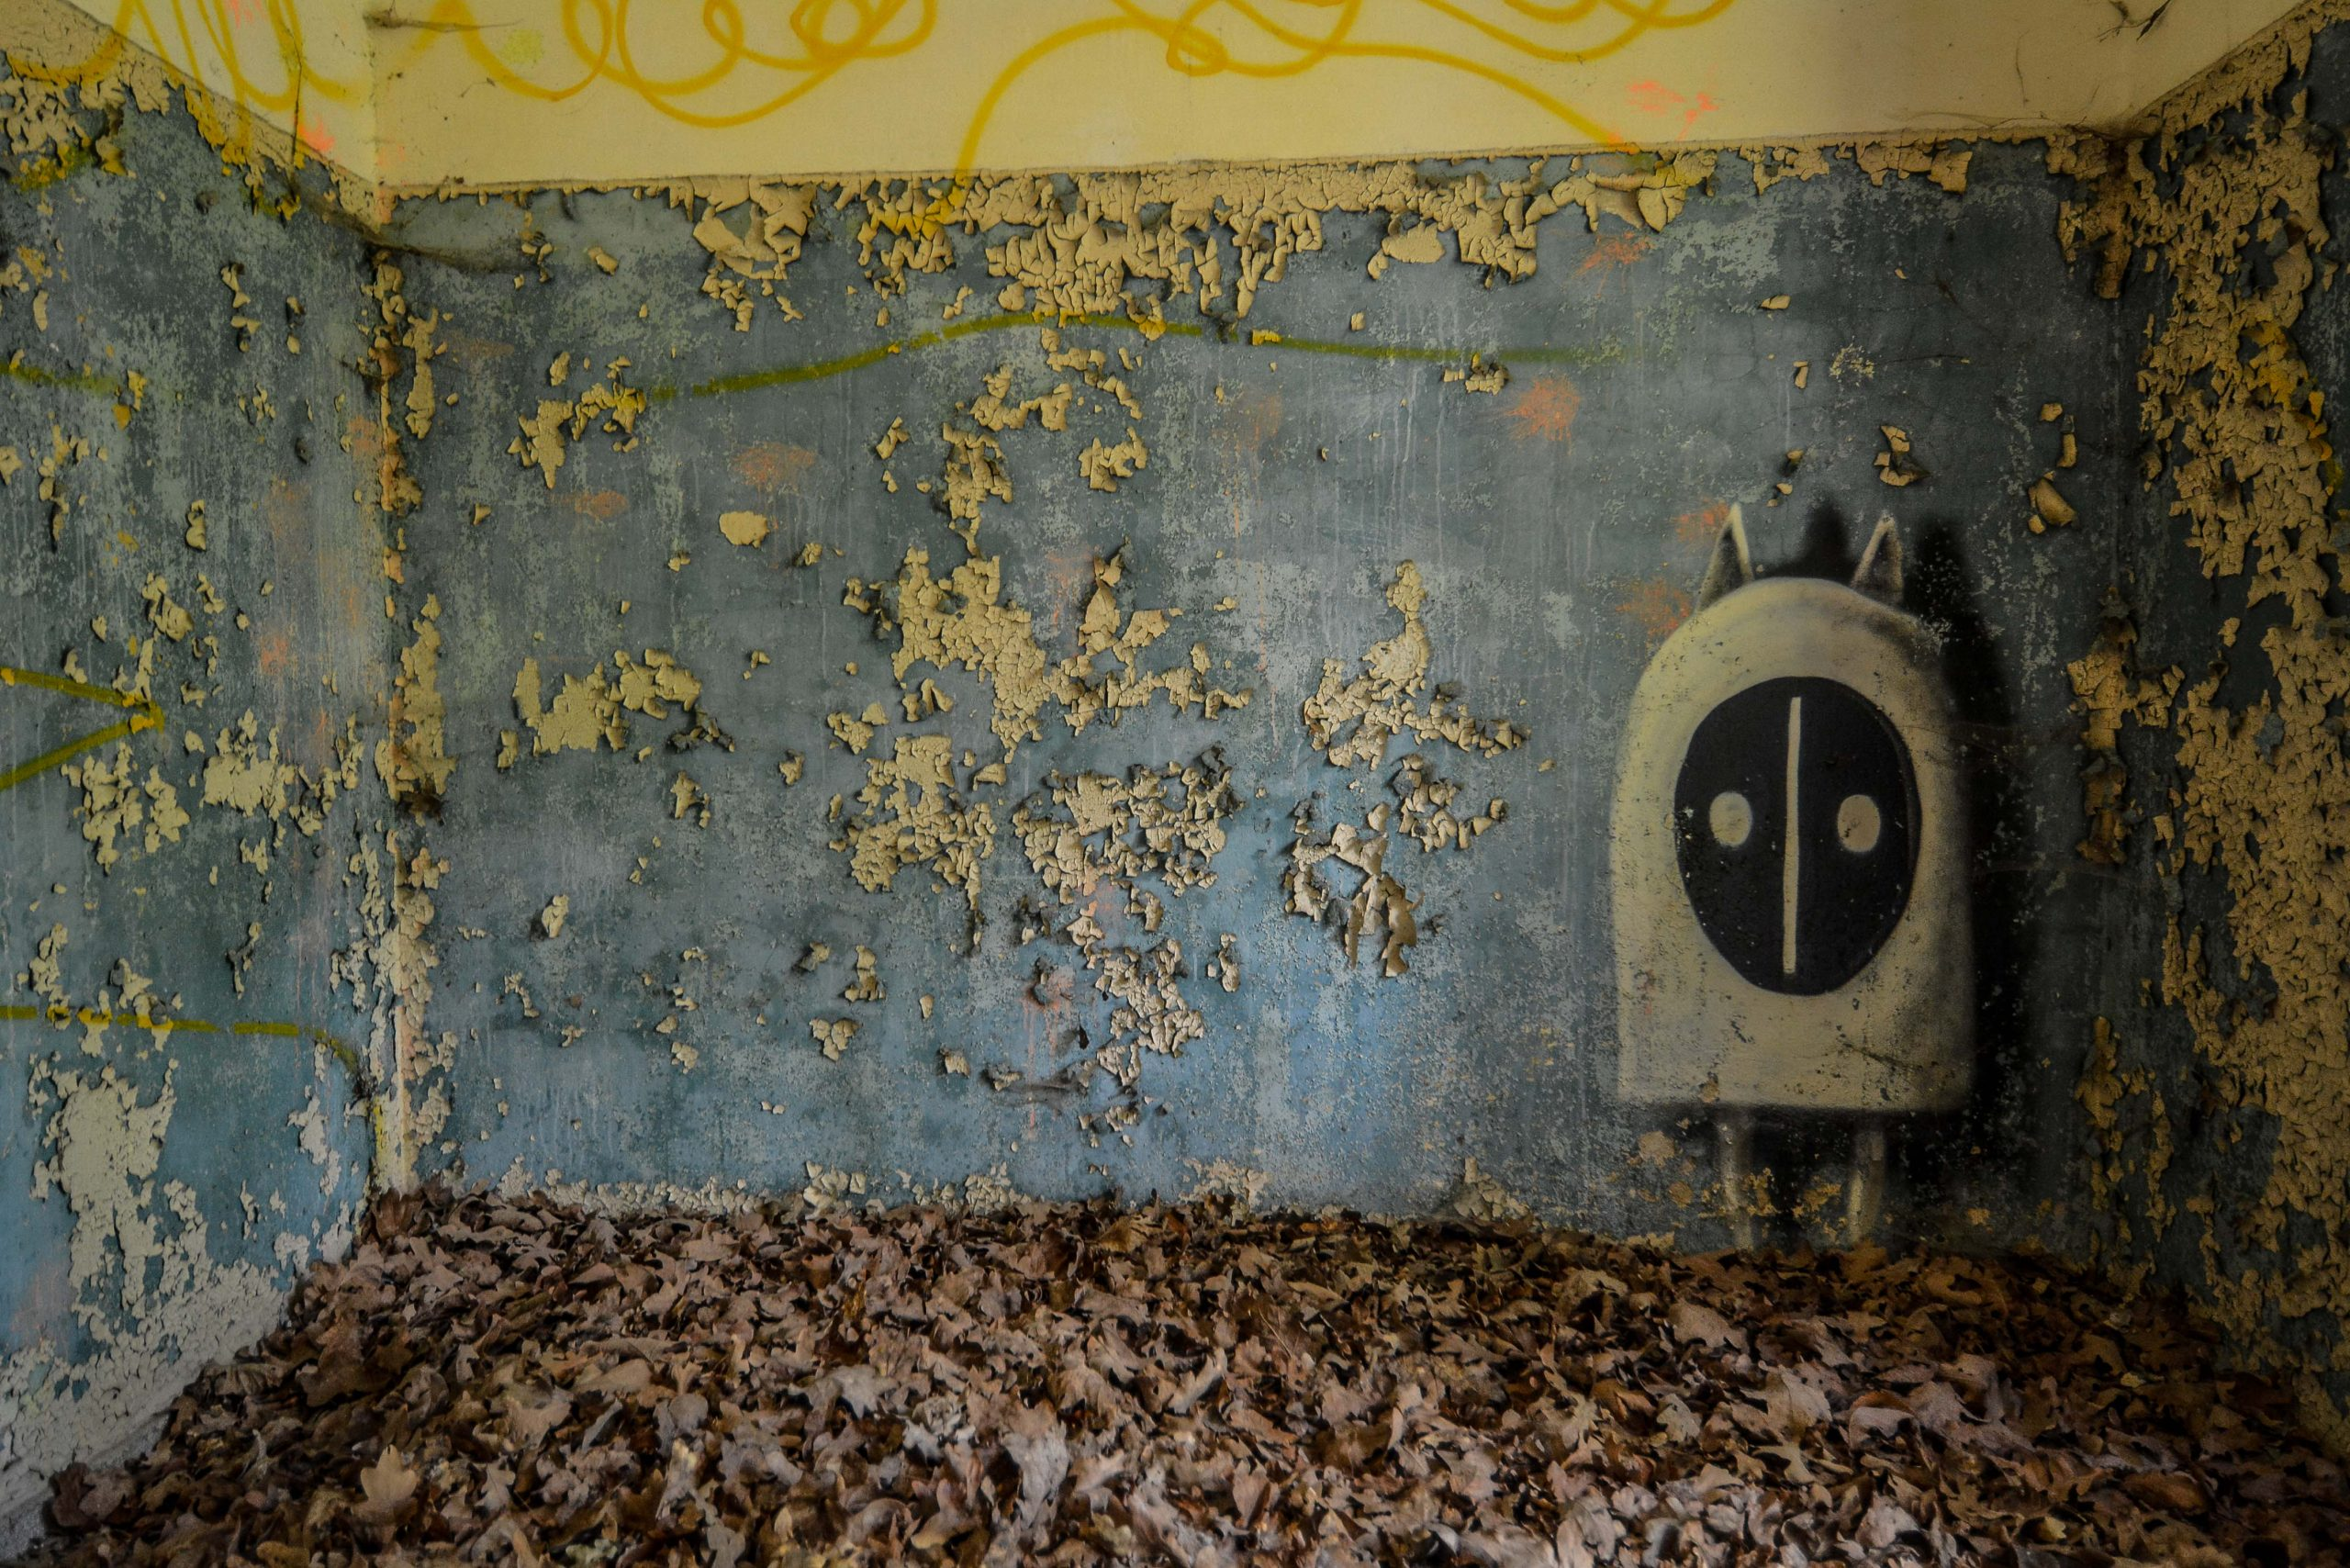 street art monster tuberkulose heilstaette grabowsee sanatorium oranienburg lost places abandoned urbex brandenburg germany deutschland